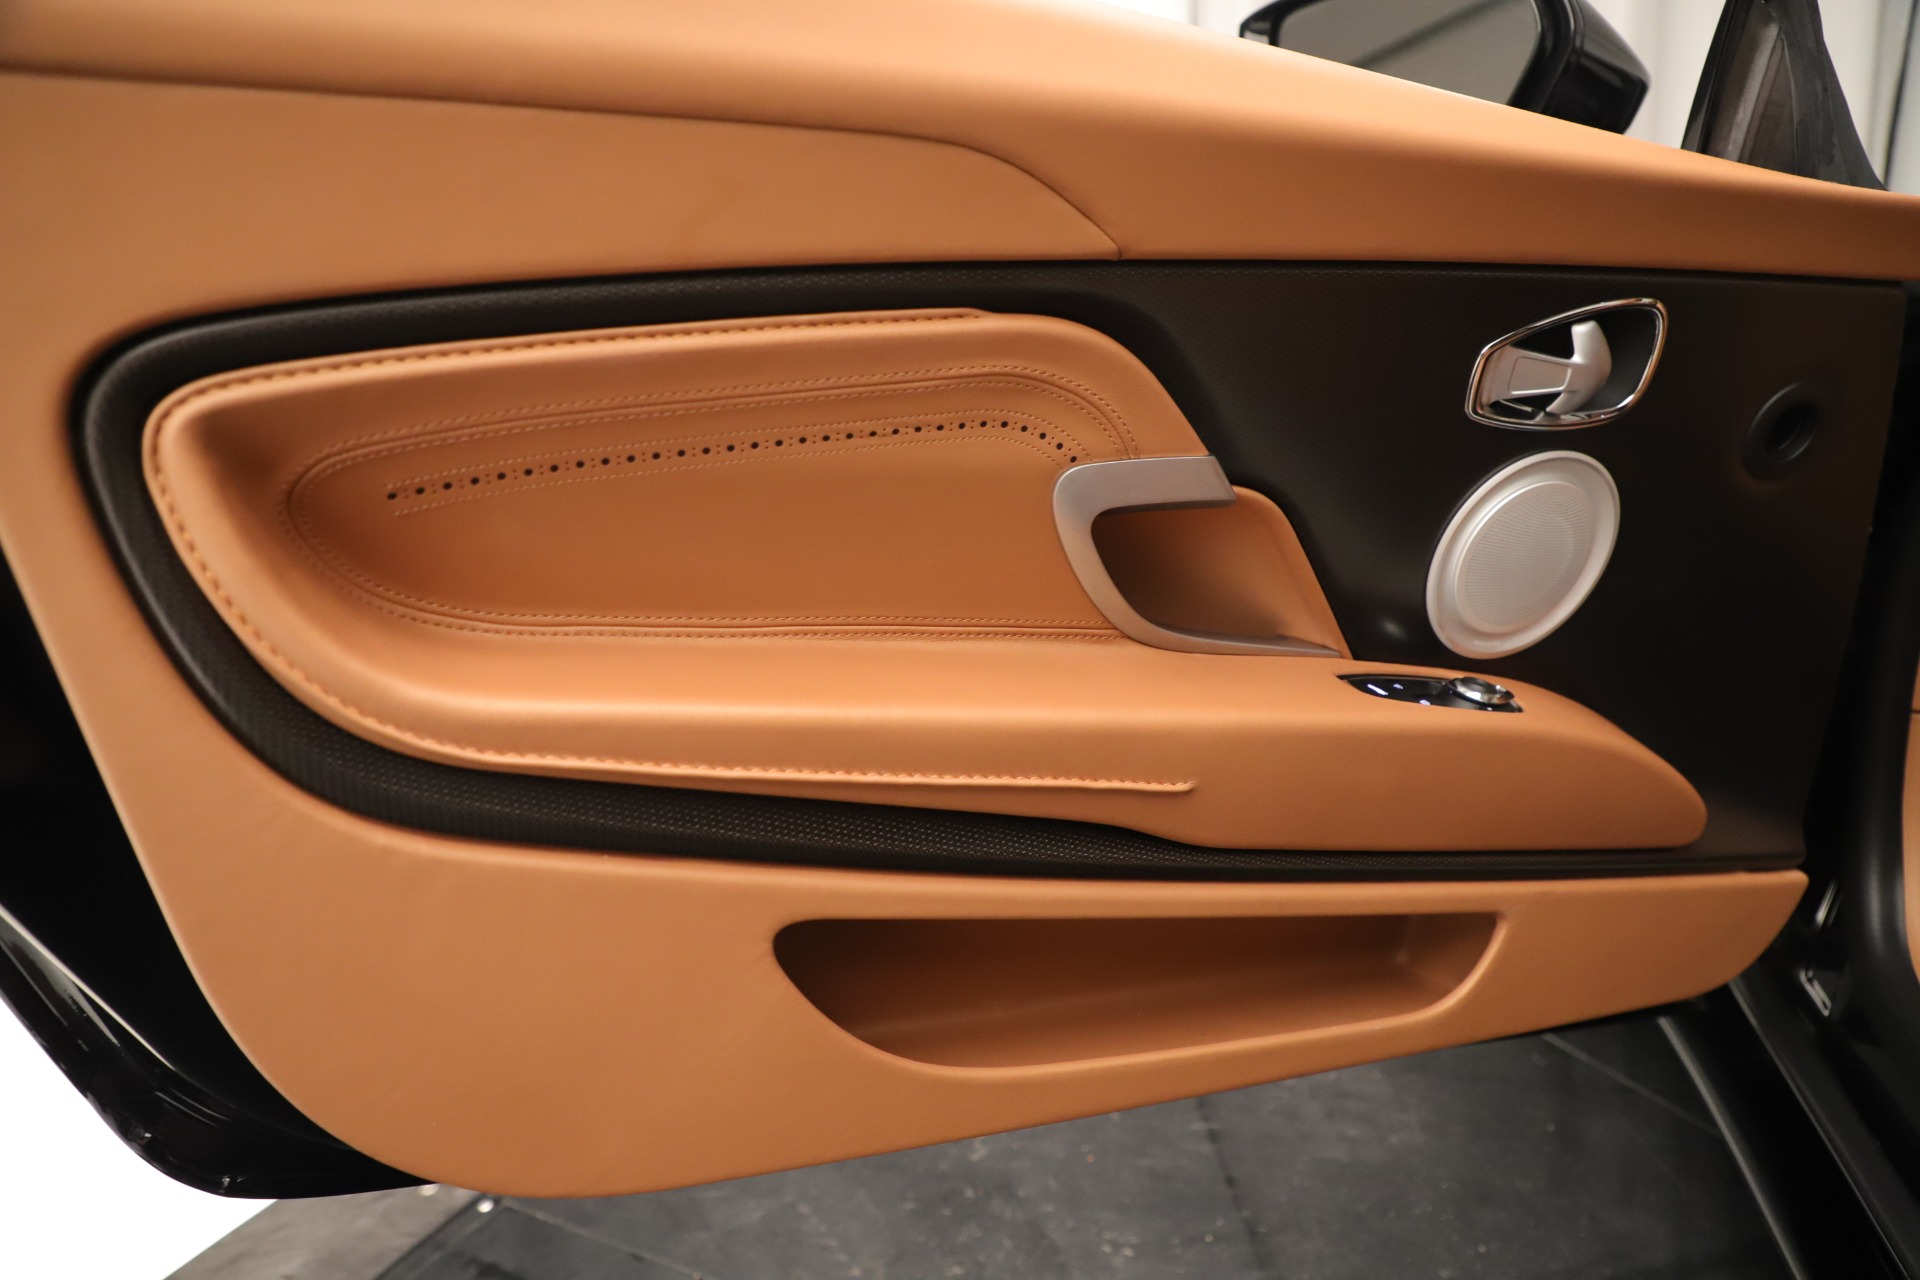 Used 2017 Aston Martin DB11 Launch Edition For Sale In Westport, CT 3431_p16